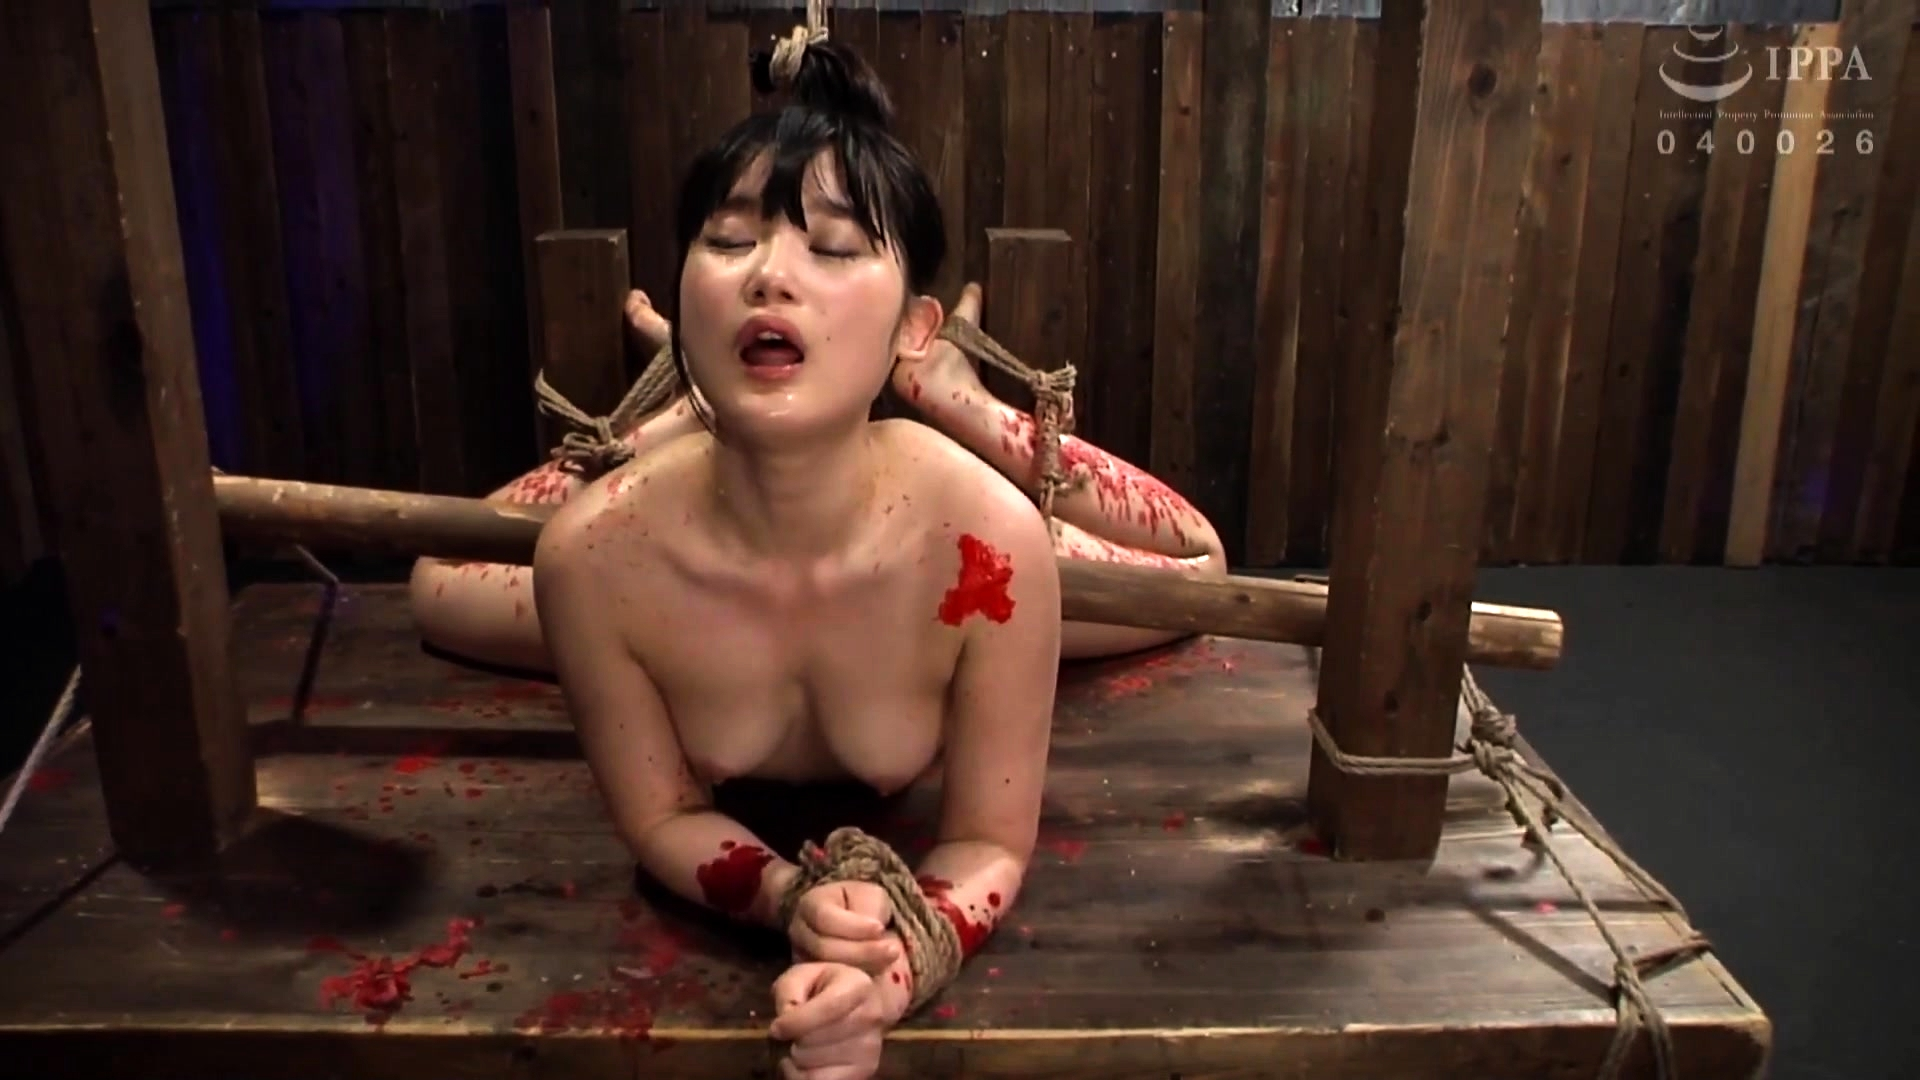 Free Bdsm Hardcore Porn free mobile porn - japanese hardcore bdsm and fetish sex